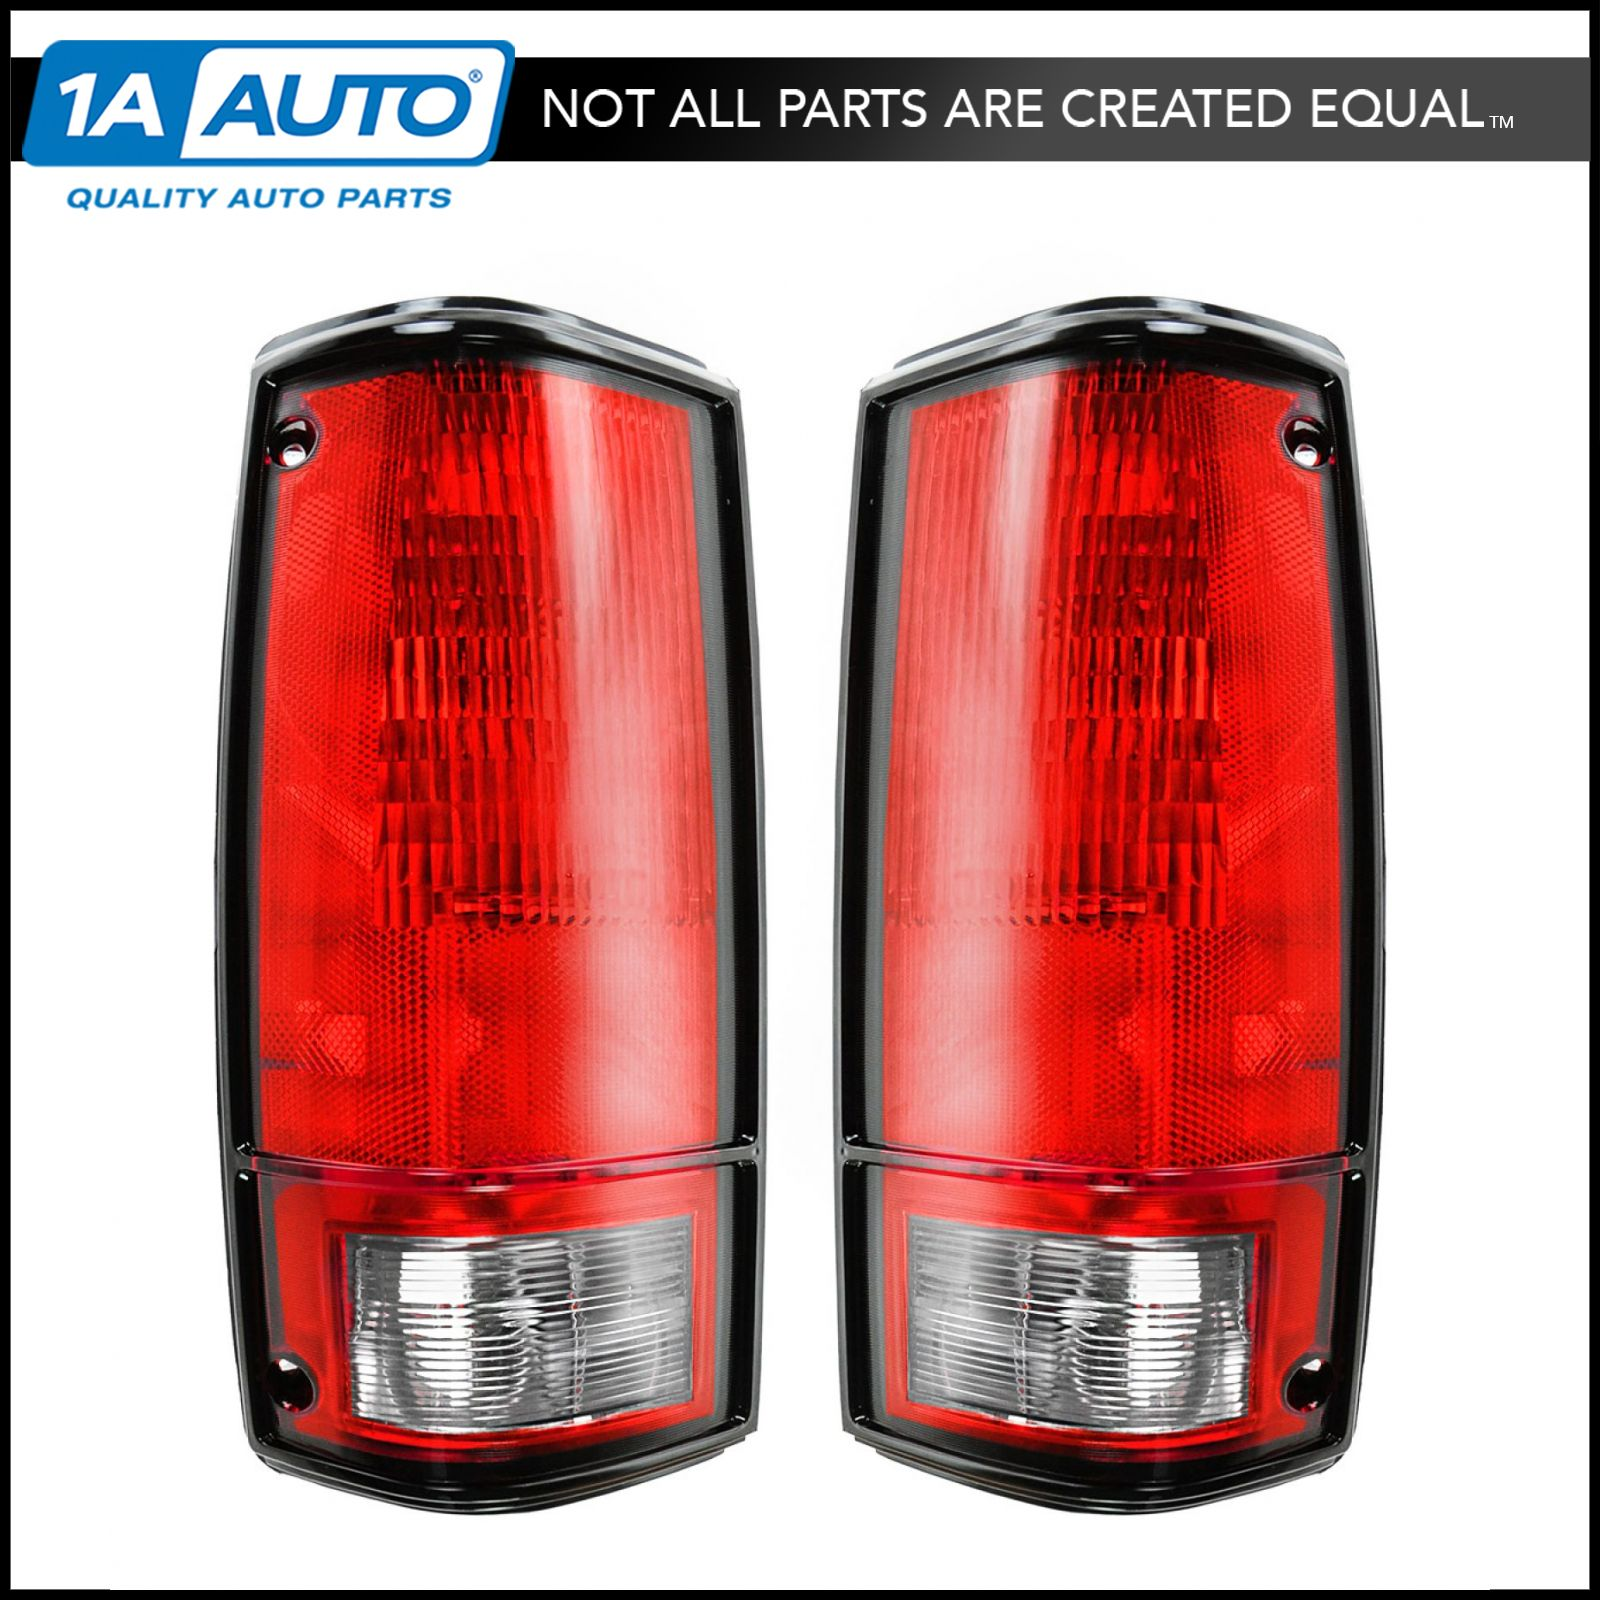 hight resolution of taillights taillamps brake lights pair set rear for 82 93 pickup truck s10 s15